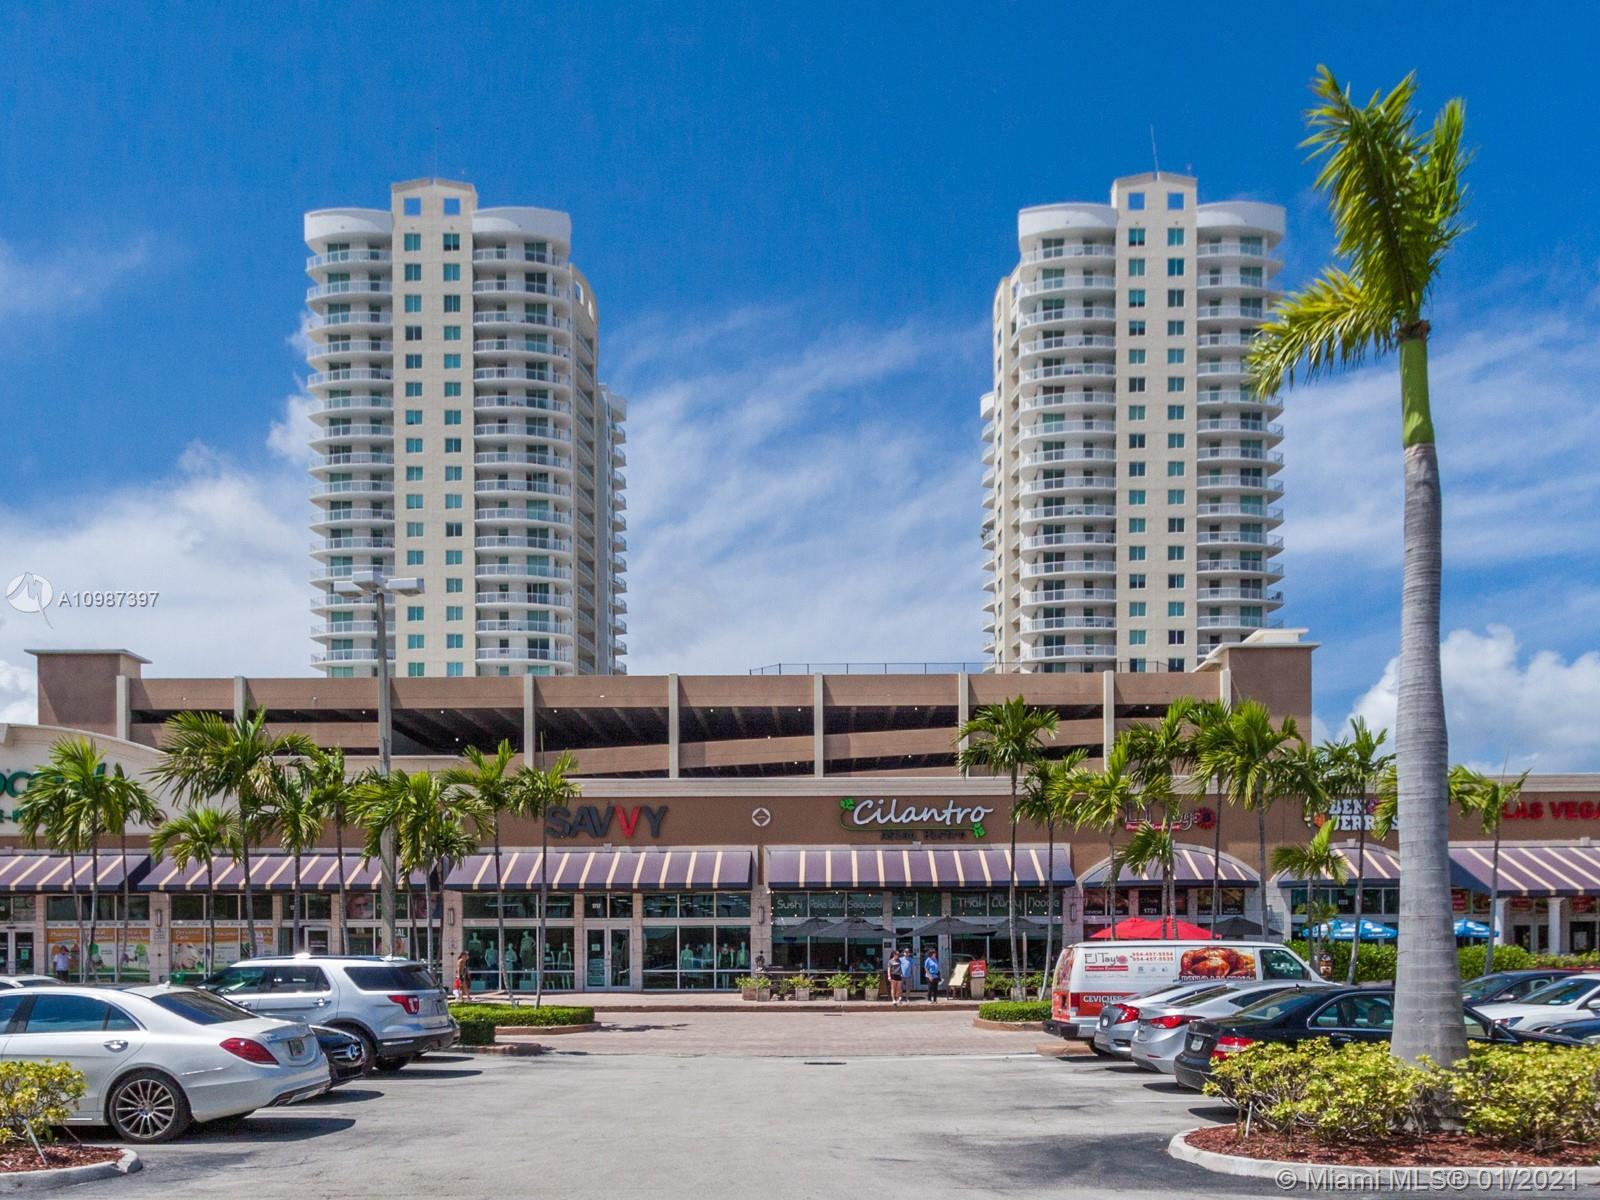 Located on one of the most popular lines in the complex. The Unit is 1425 Sq Ft, 2 bedroom /2 bath f